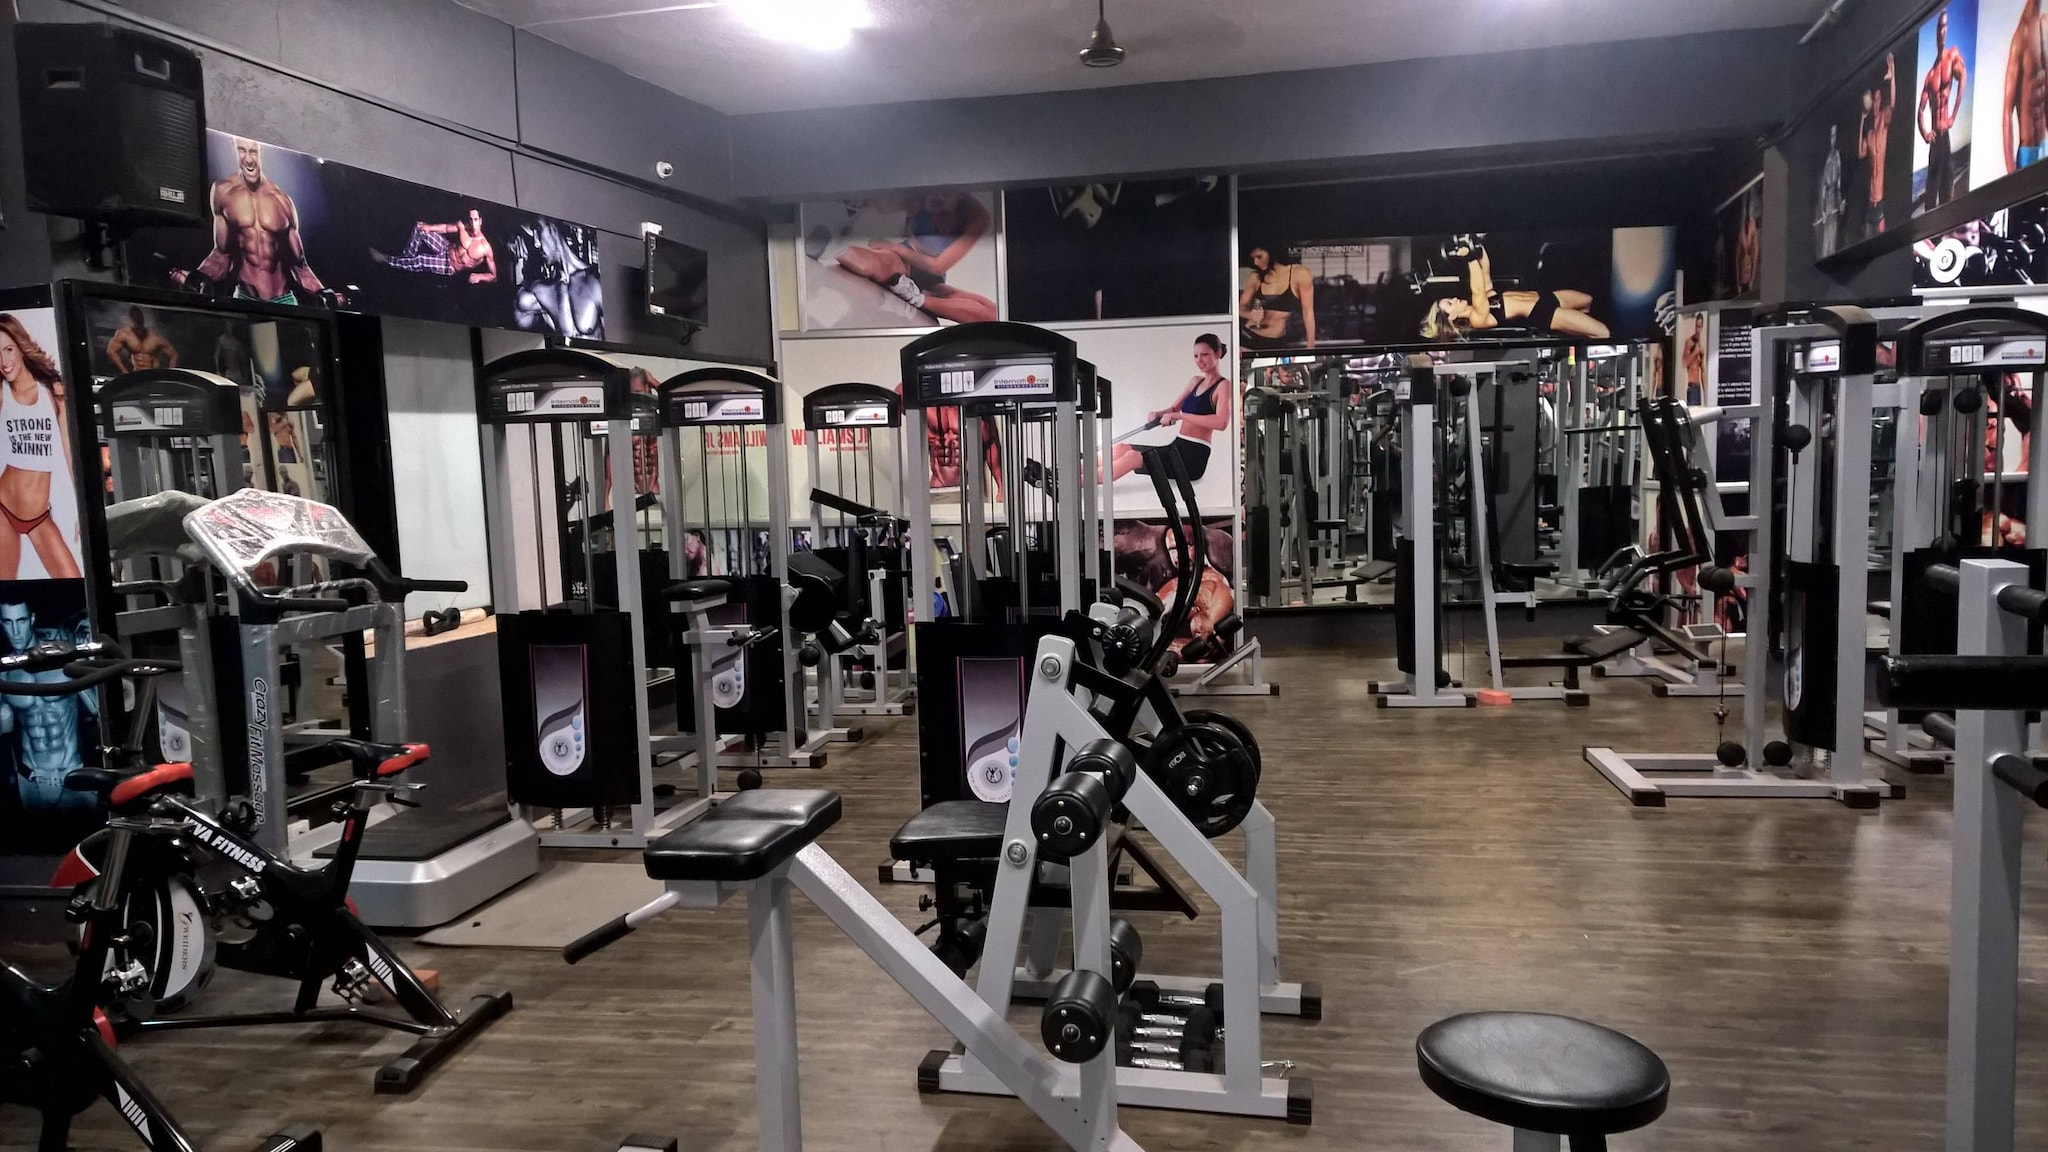 Top 50 gyms in mangalore best body building & fitness centres